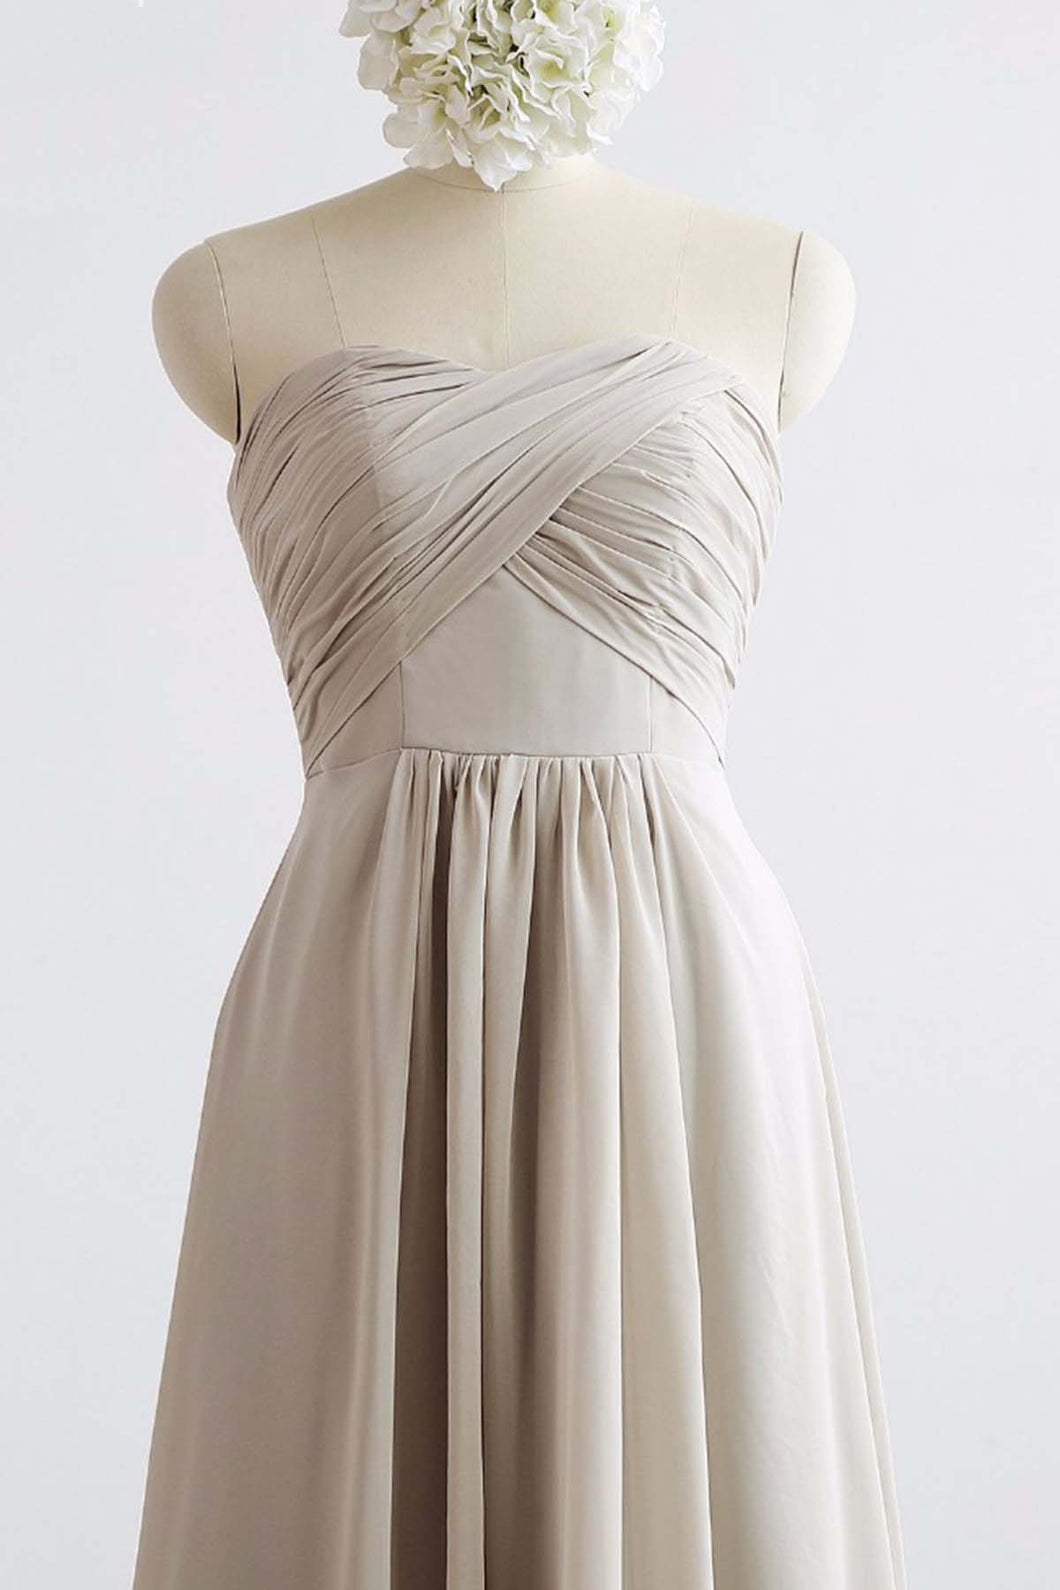 Strapless Gray Chiffon Long Open Back Prom Dress, Bridesmaid Dress